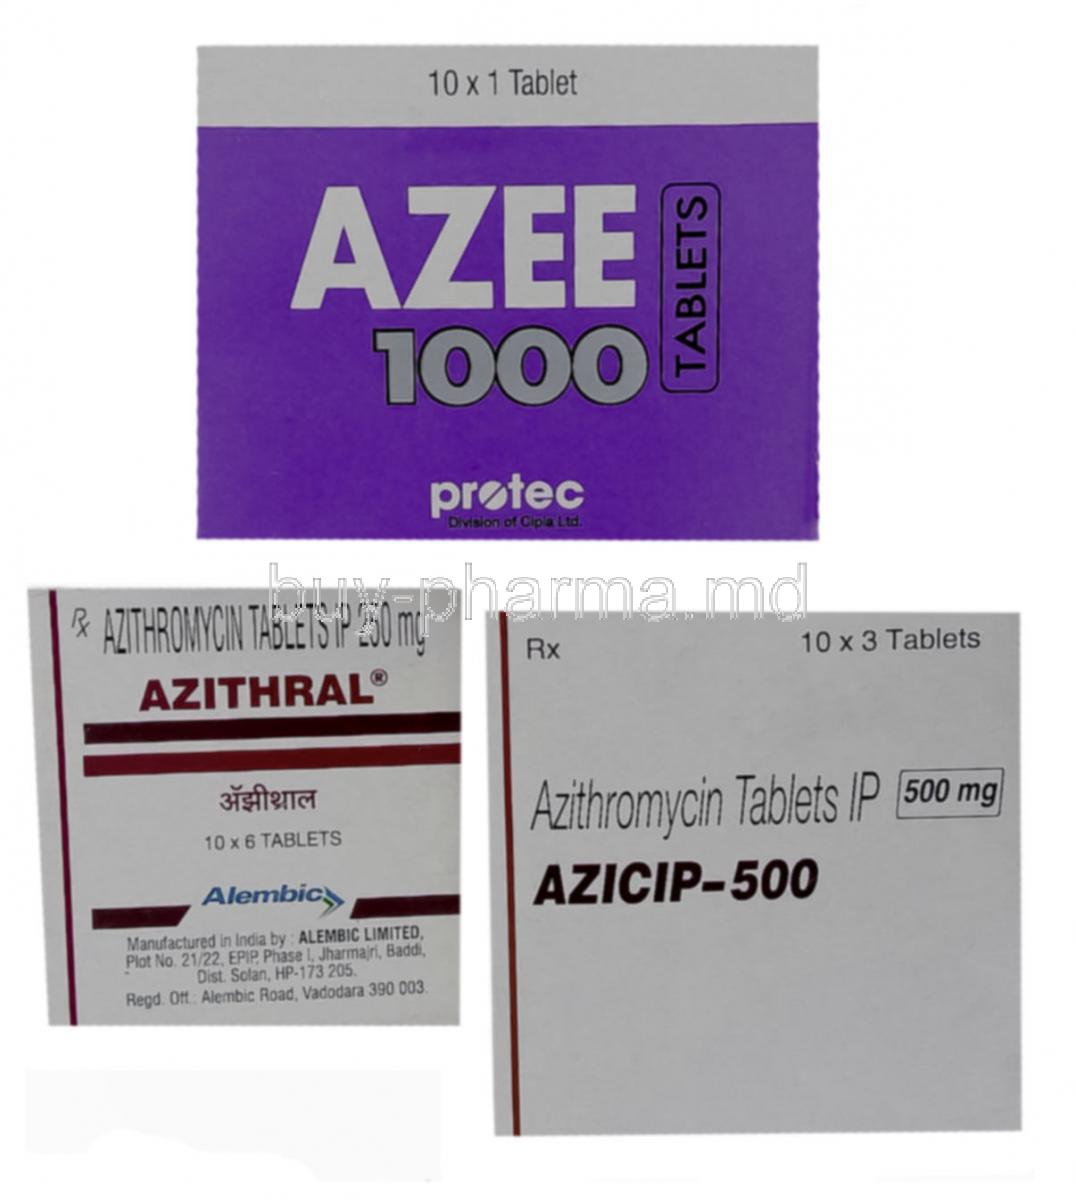 Acquista Zithromax 500 mg Online